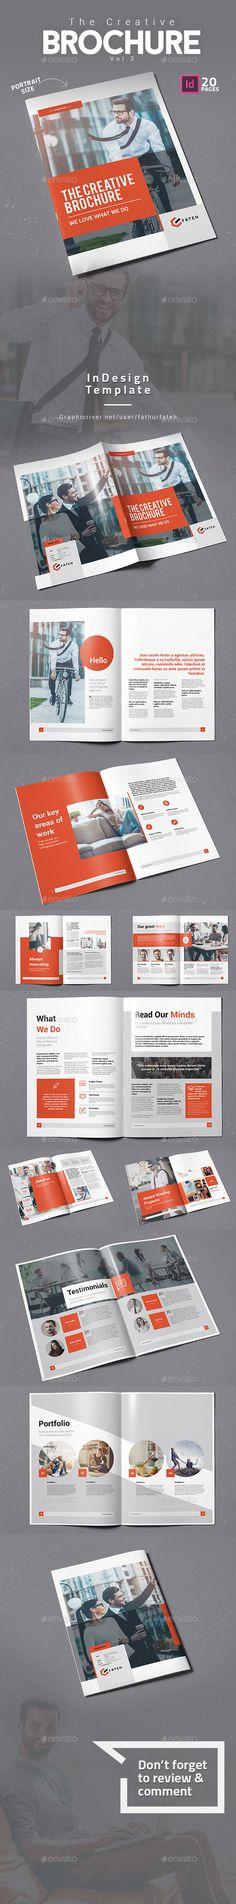 The Creative Bochure Vol.3 — InDesign INDD #template #charity • Download ➝ https://graphicriver.net/item/the-creative-bochure-vol3/19522742?ref=pxcr